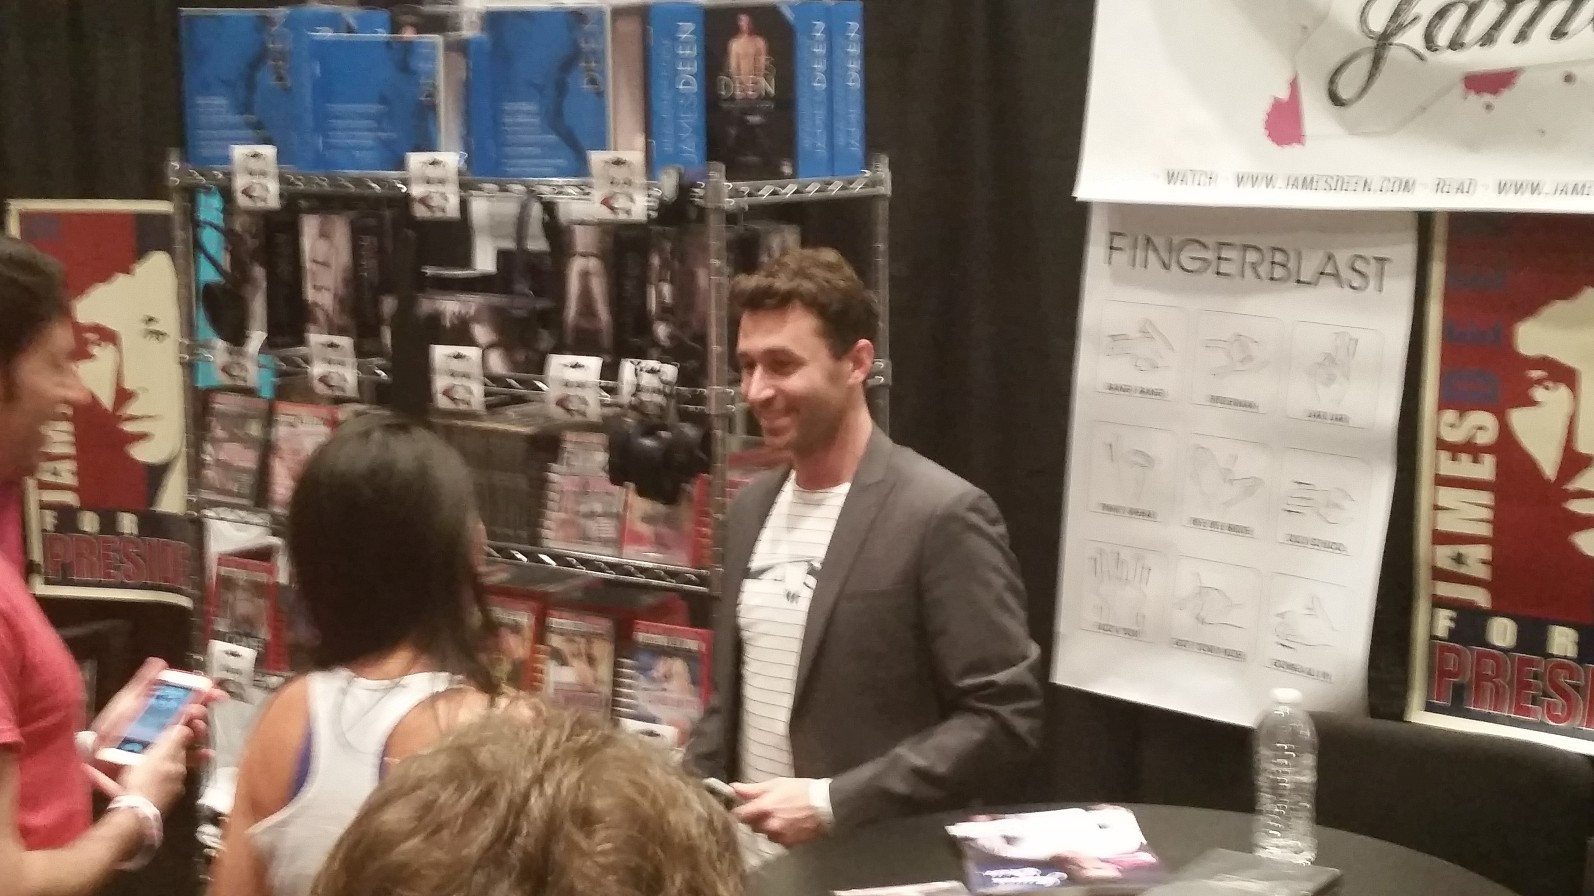 Cal/OSHA Fines James Deen for Violating Condom and Safety Laws